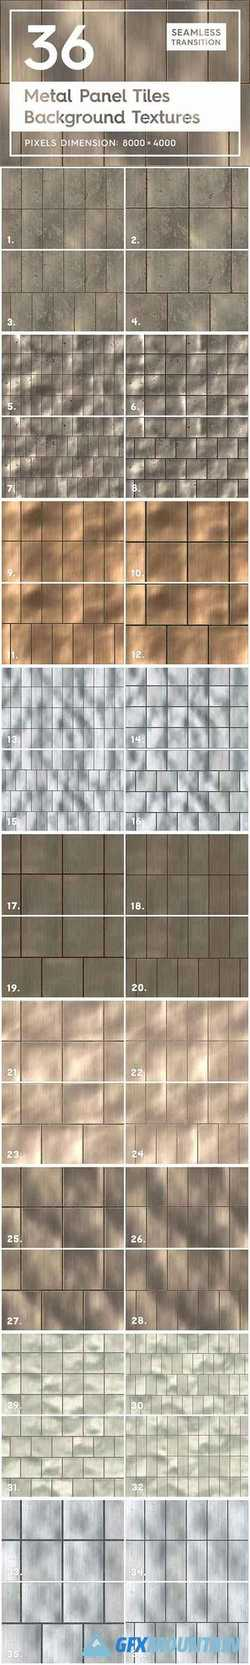 36 Metal Panel Tiles Backgrounds 2165124